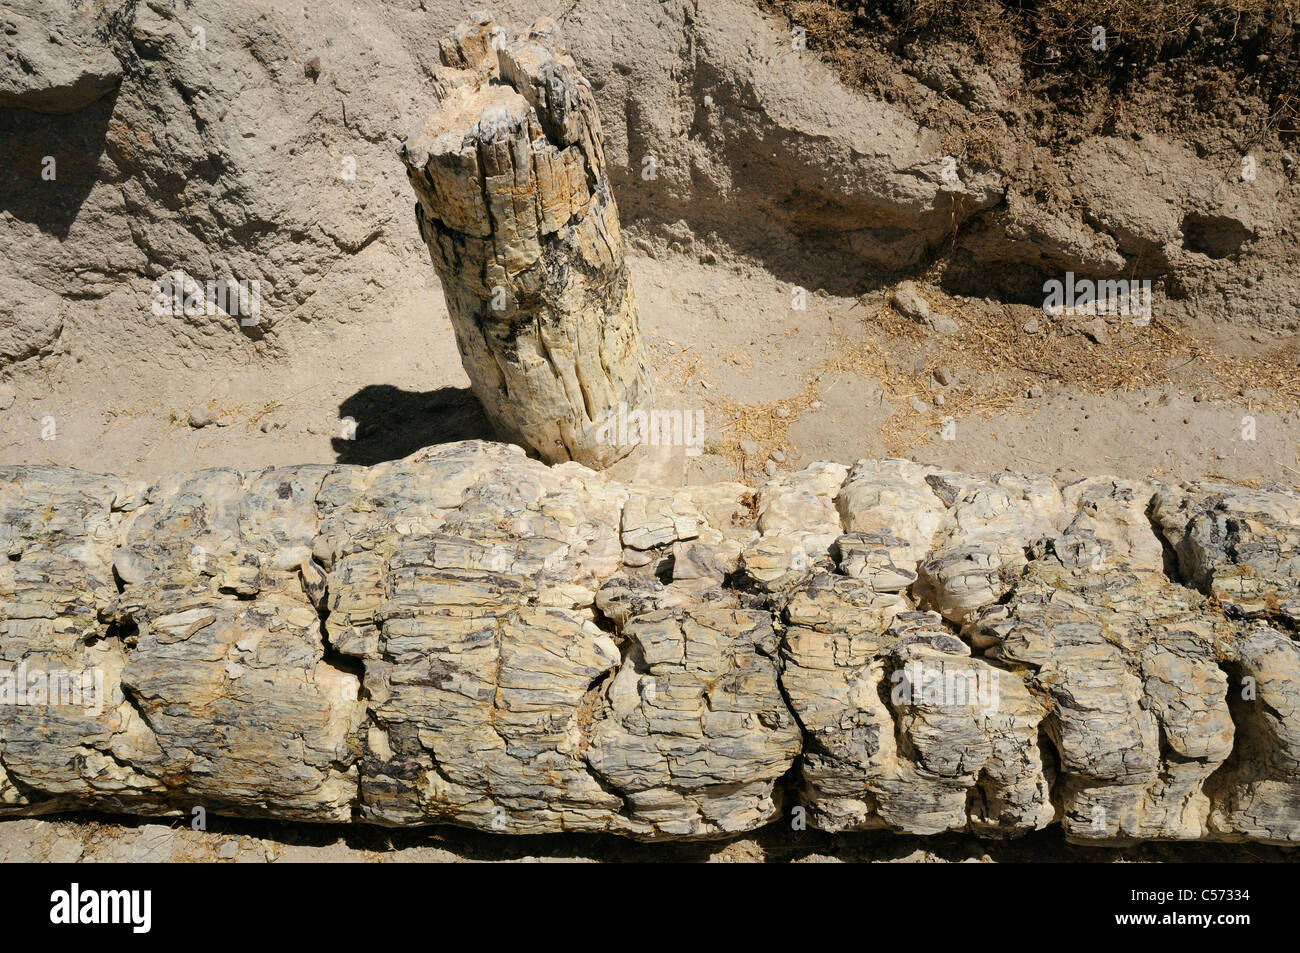 Petrified tree trunks from Miocene era  showing charring from ancient volcanic activity, Lesbos, Greece. - Stock Image